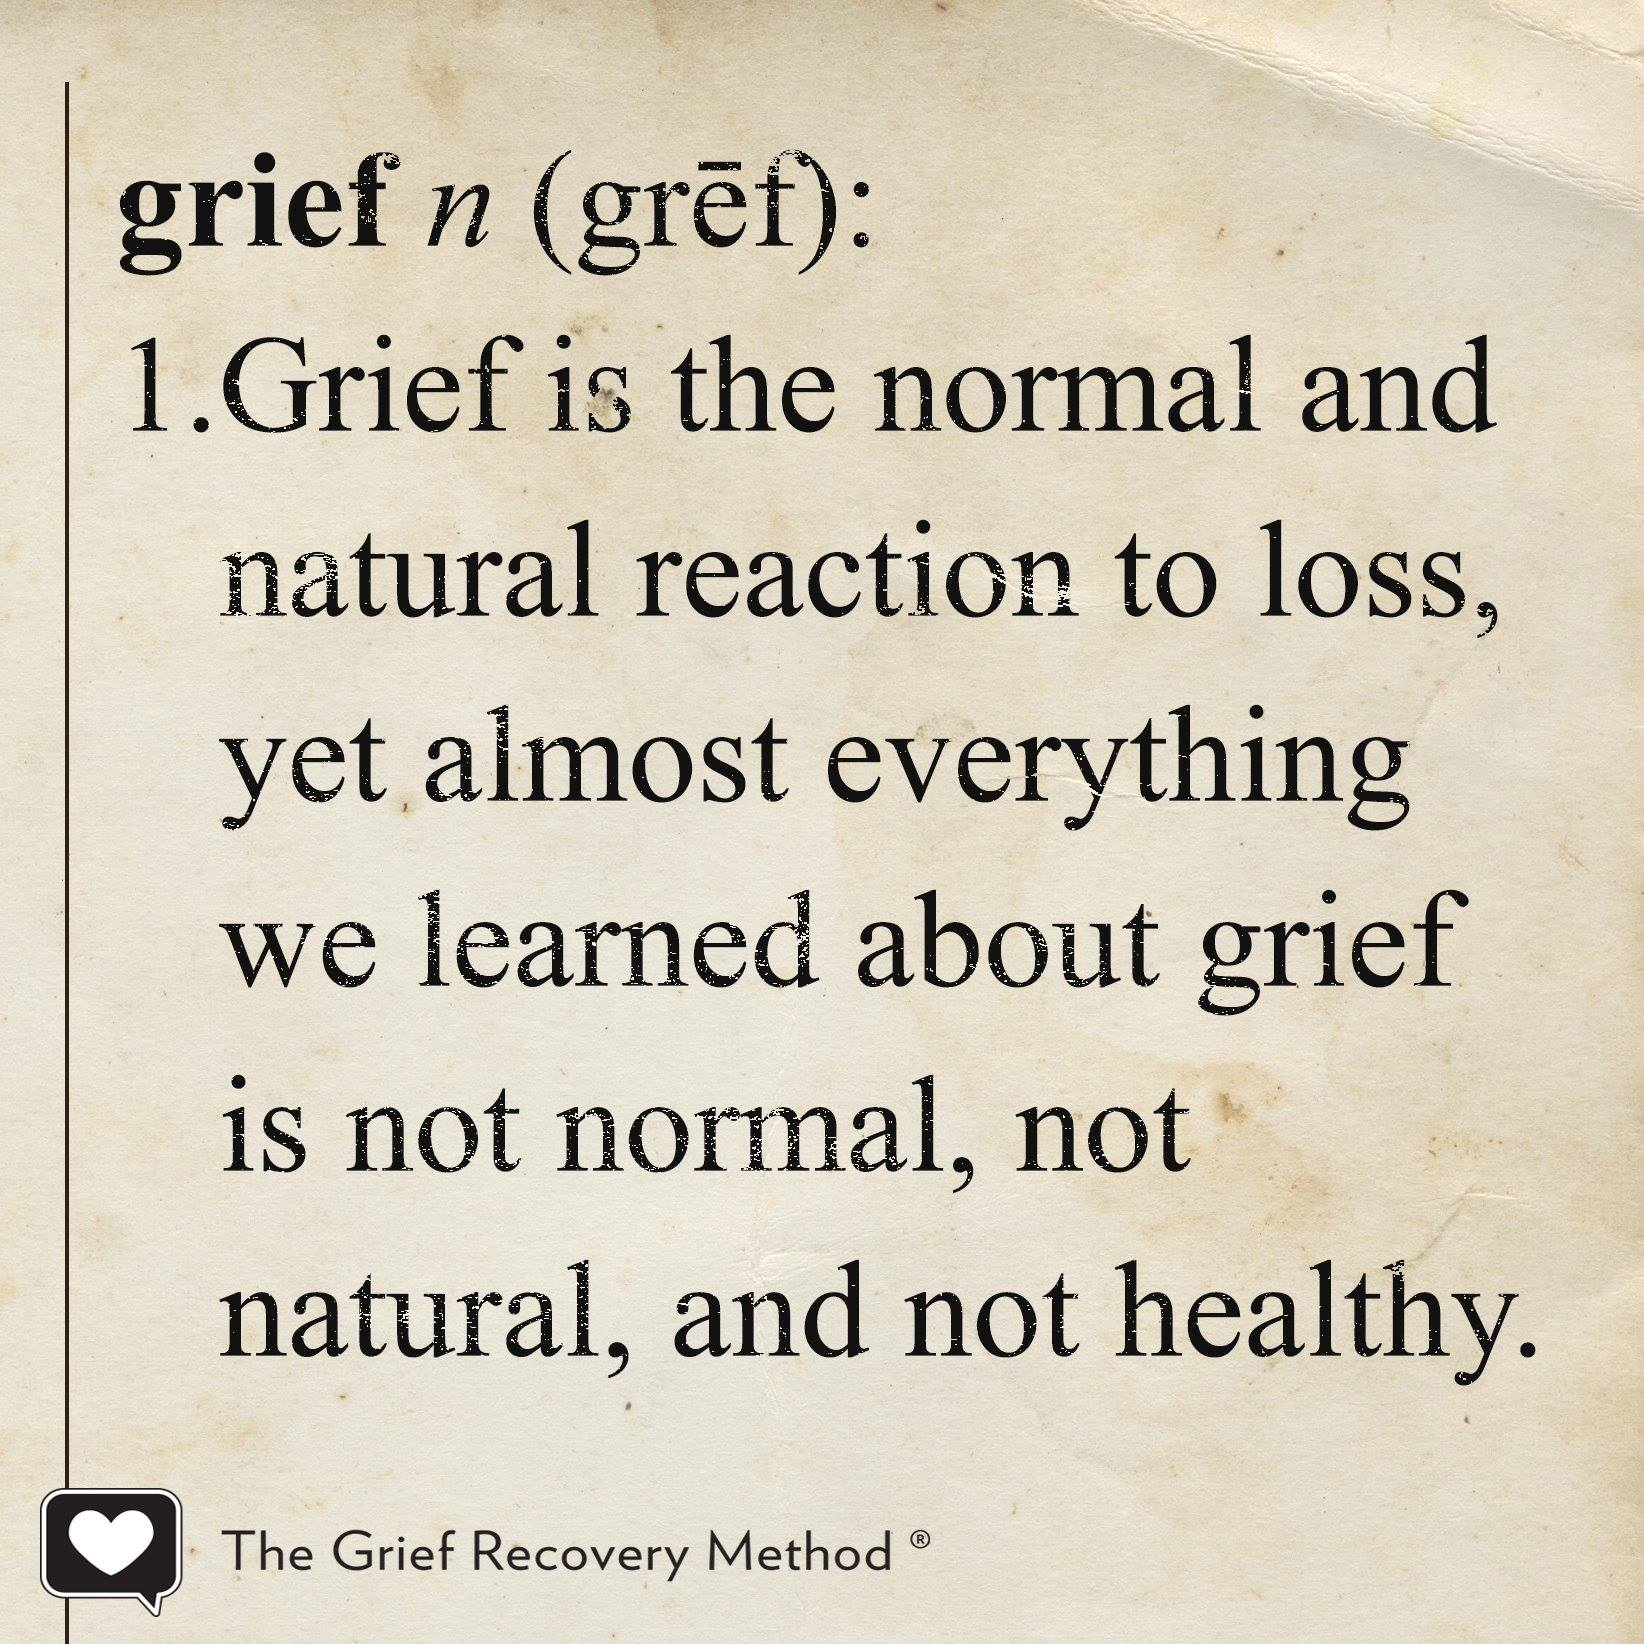 definition of grief normal and natural reaction to loss